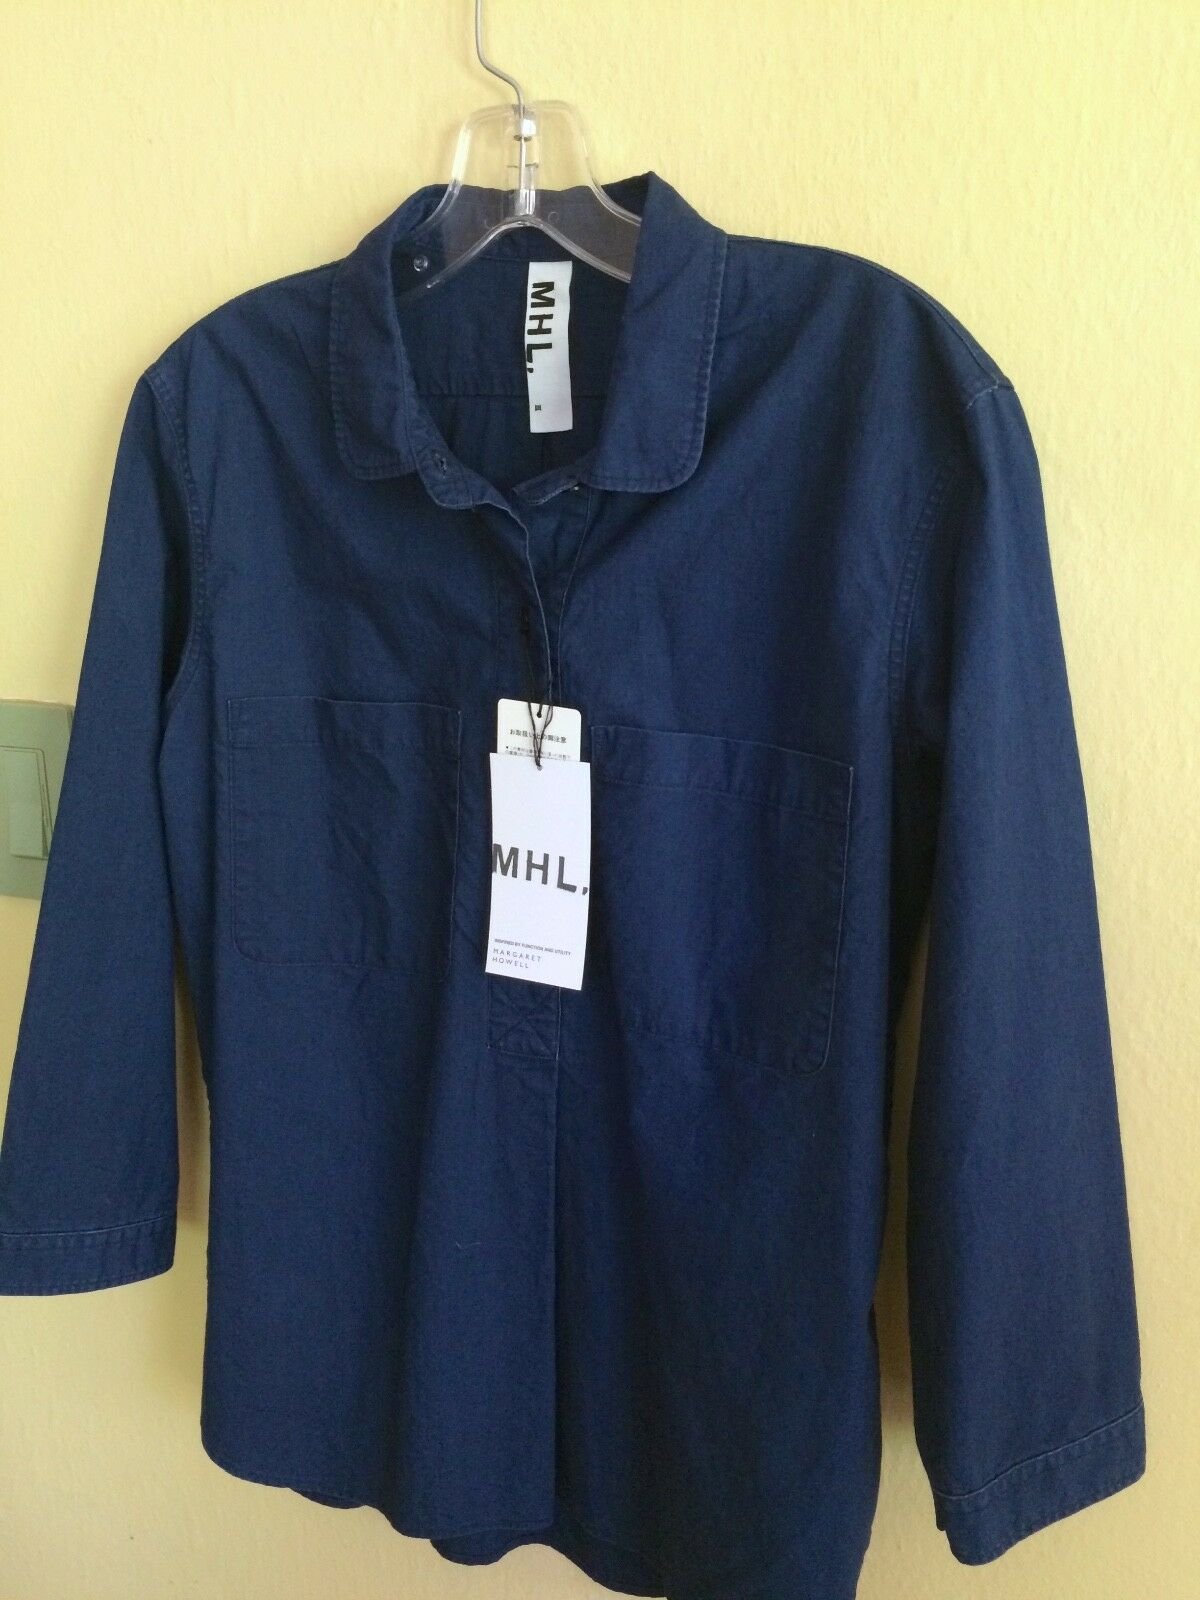 NWT  MARGARET HOWELL MHL INDIGO DENIM CANVAS POPOVER SHIRT S